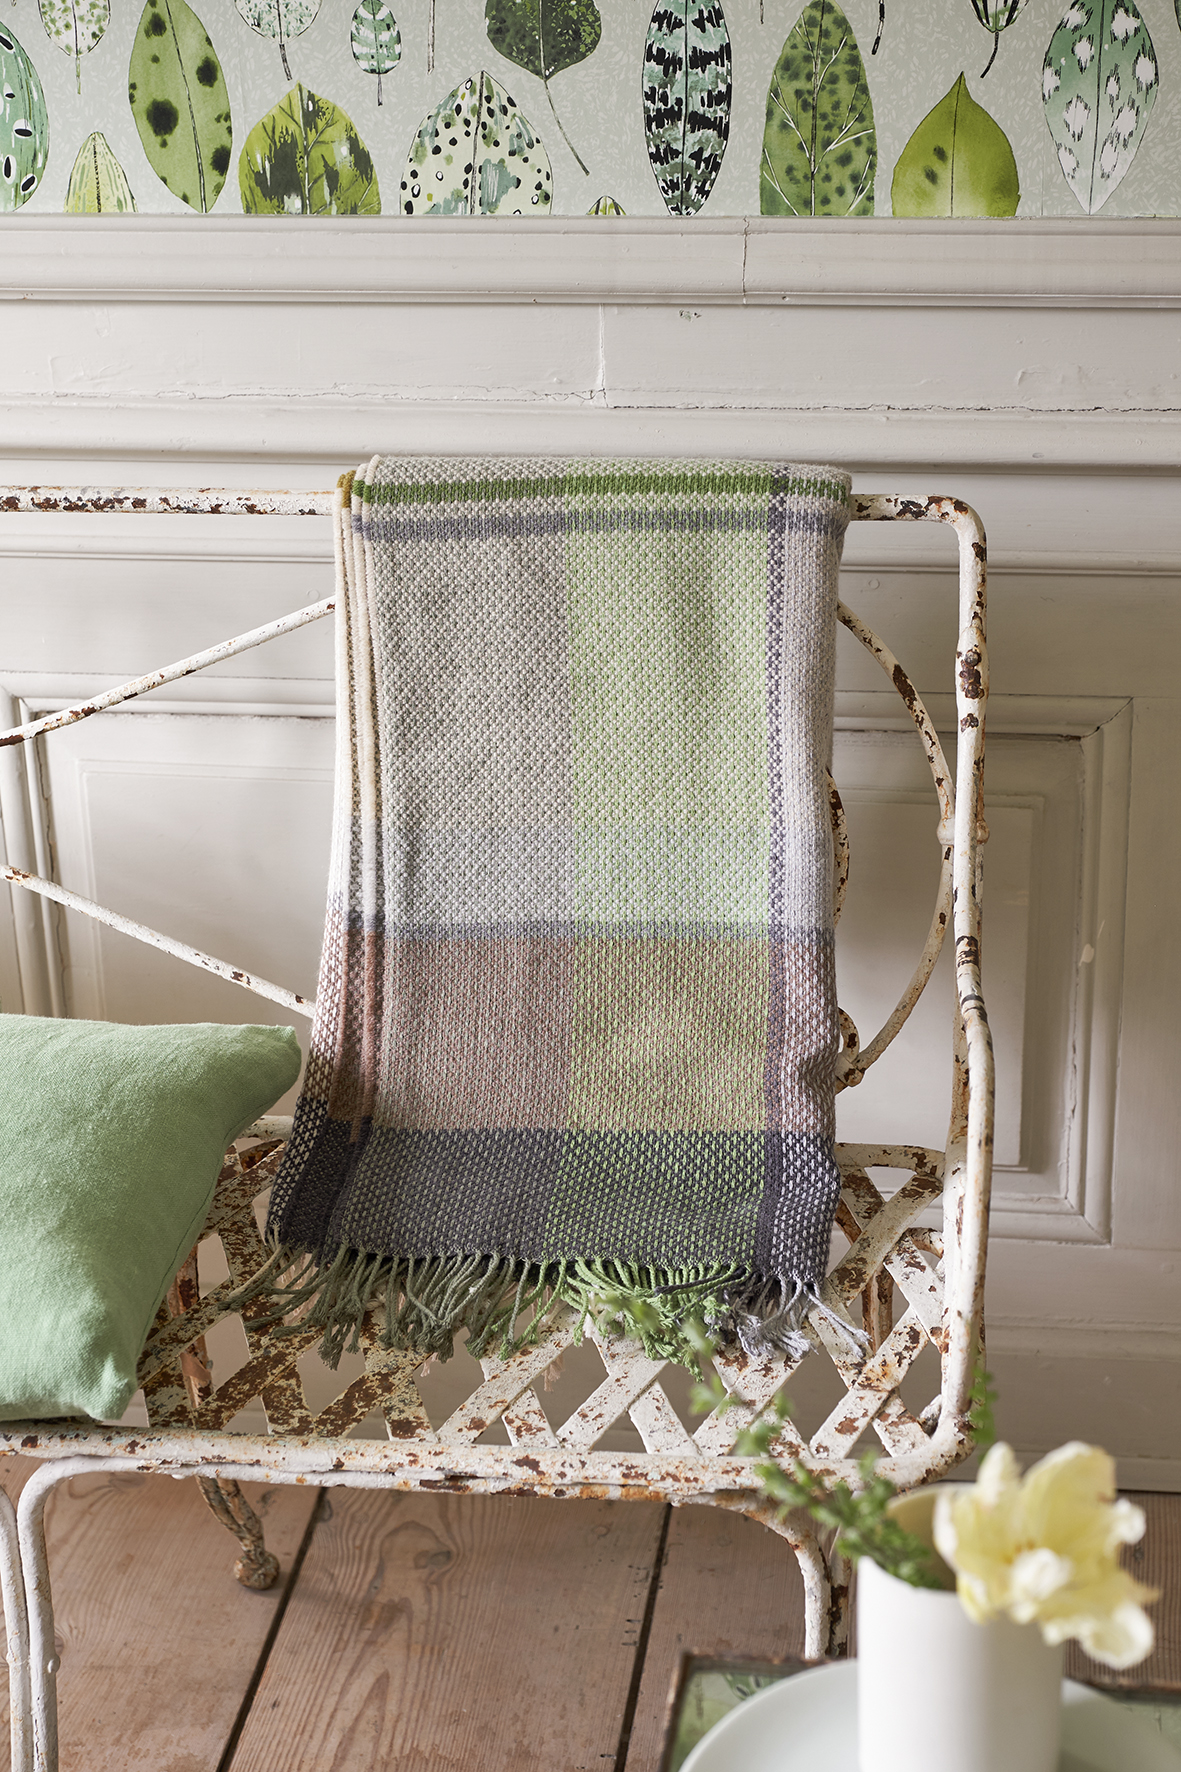 DESIGNERS GUILD THROWS